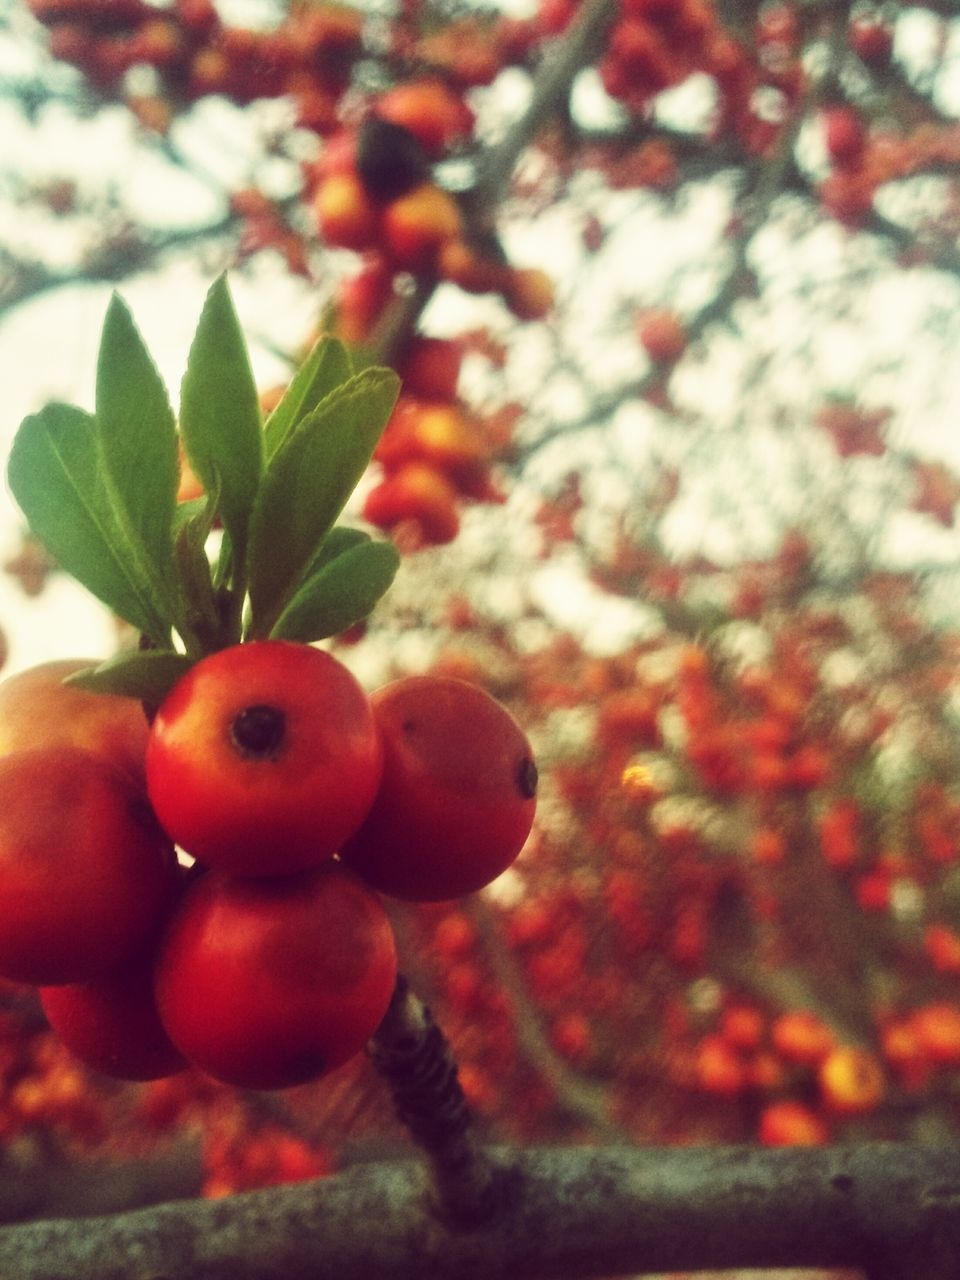 fruit, tree, food and drink, growth, leaf, nature, freshness, red, no people, close-up, food, branch, outdoors, focus on foreground, day, healthy eating, beauty in nature, plant, sky